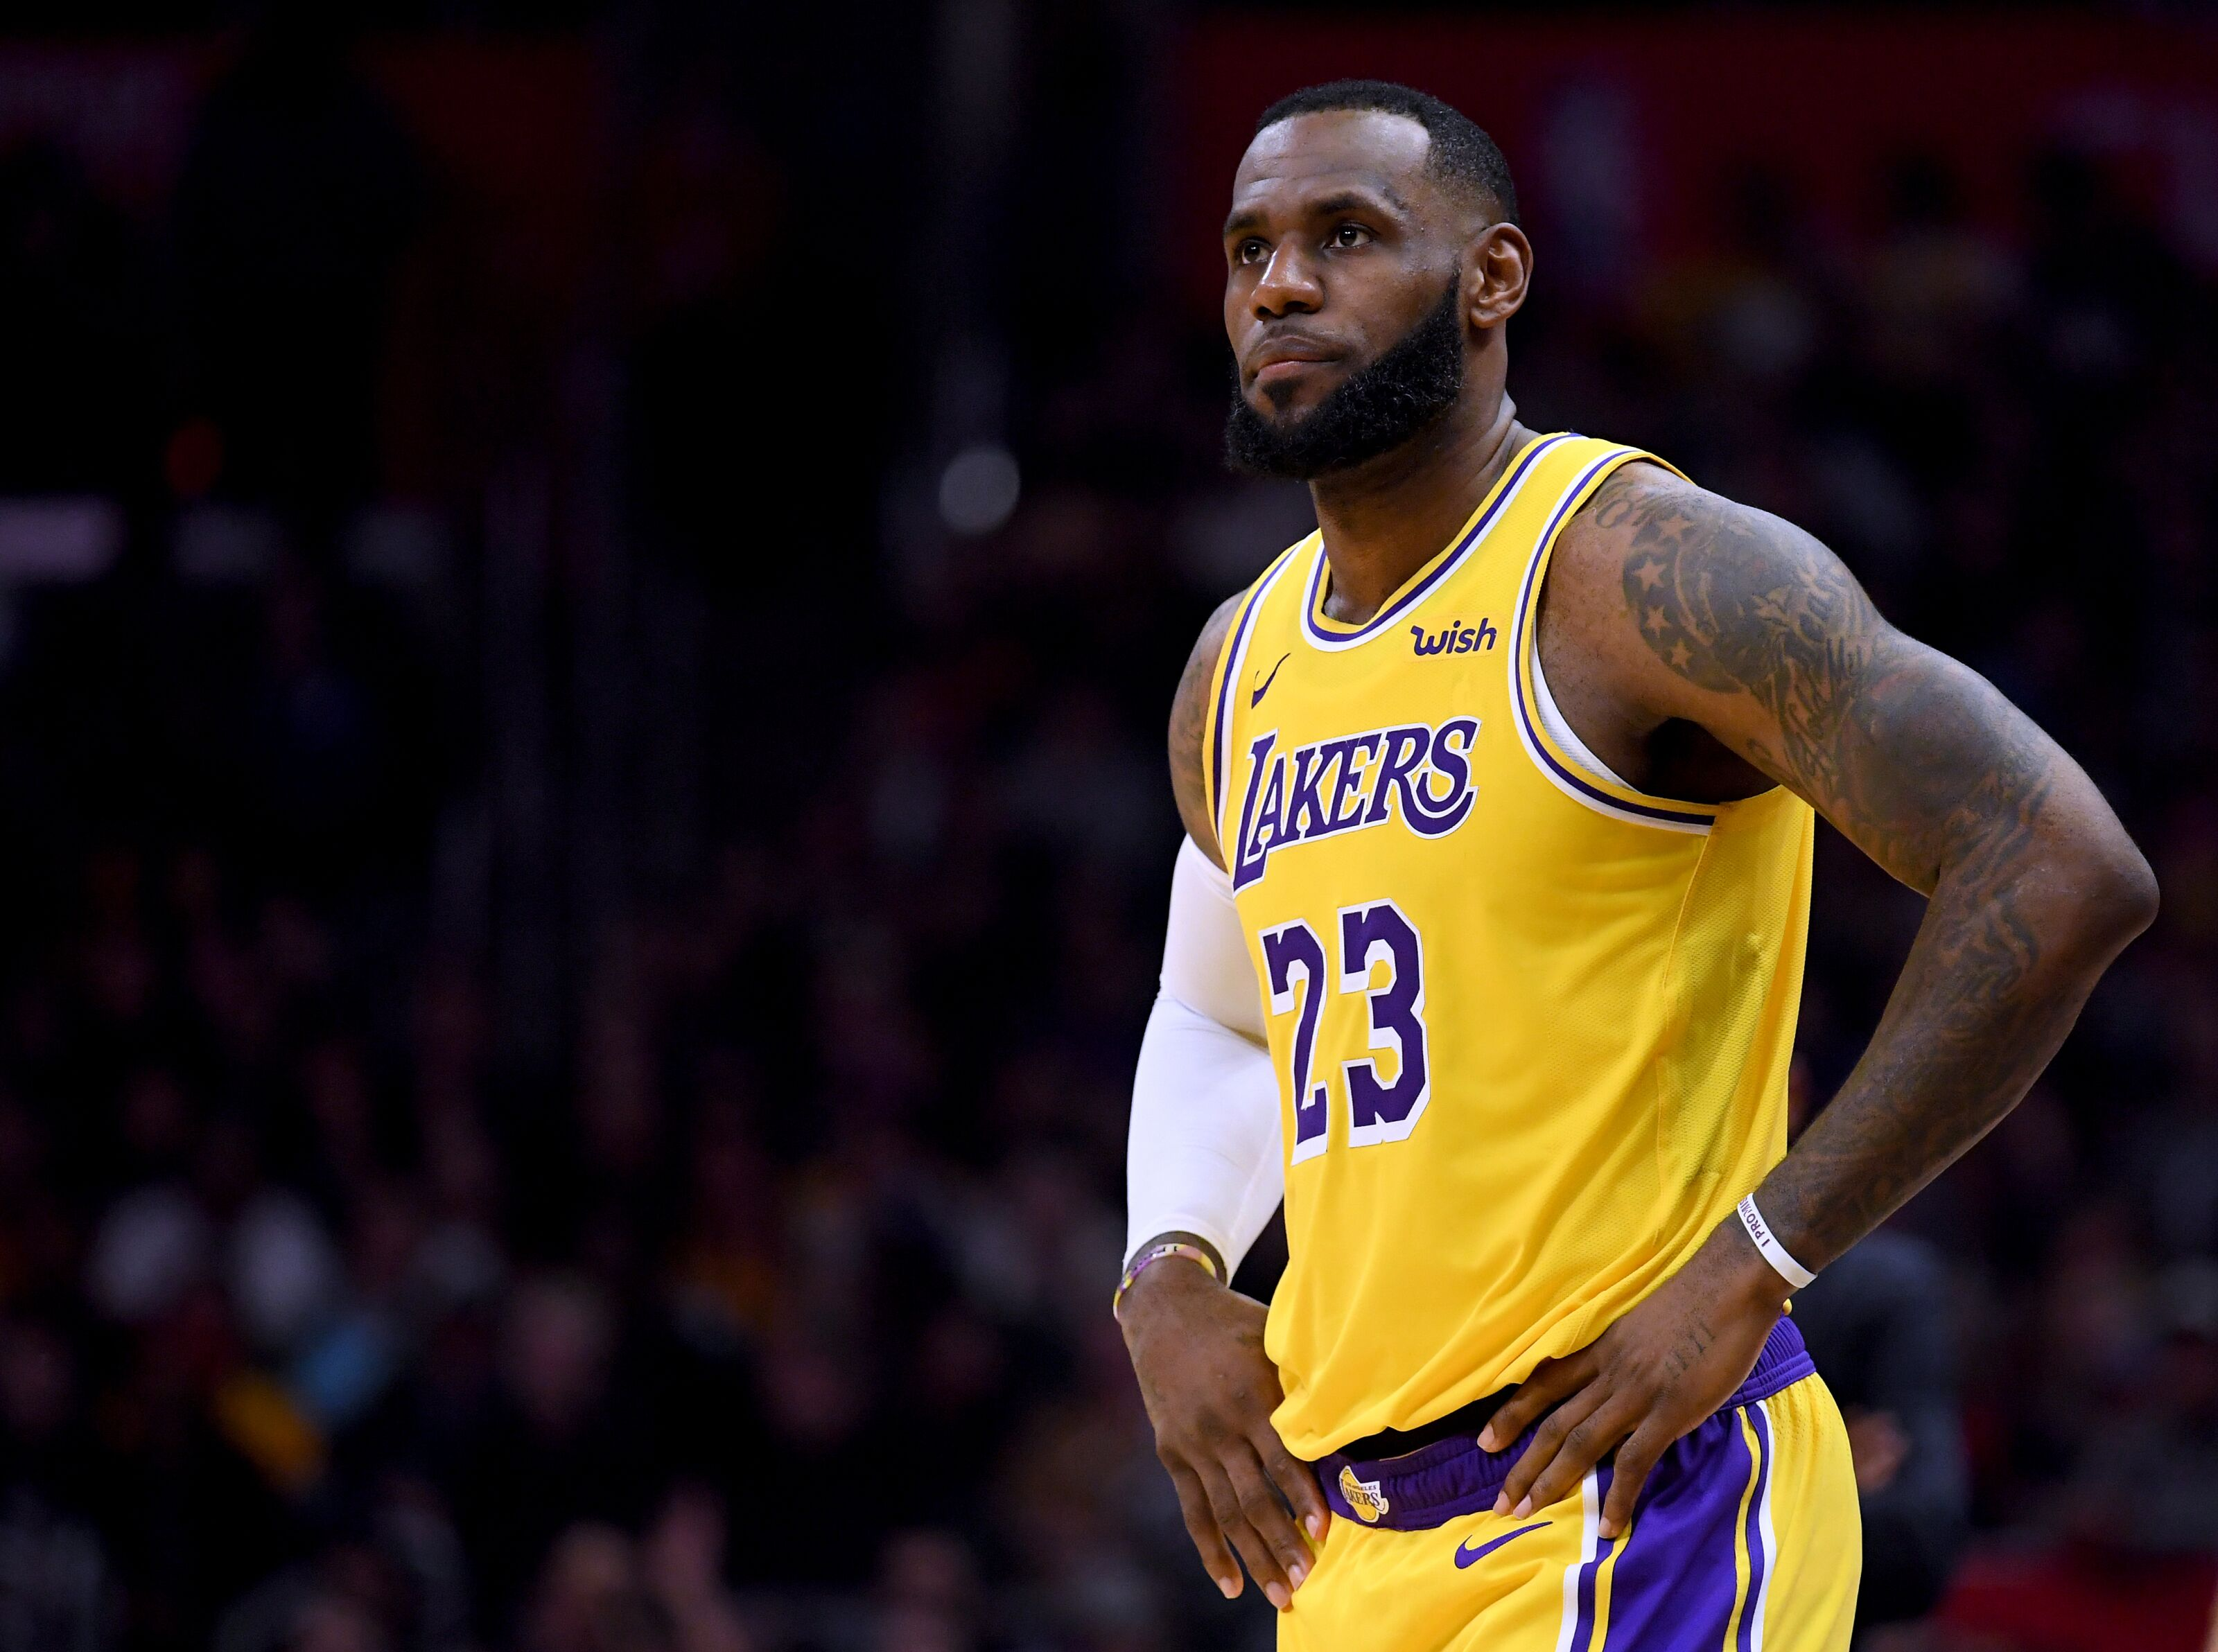 Los Angeles Lakers: The problem? Too many cooks in the kitchen